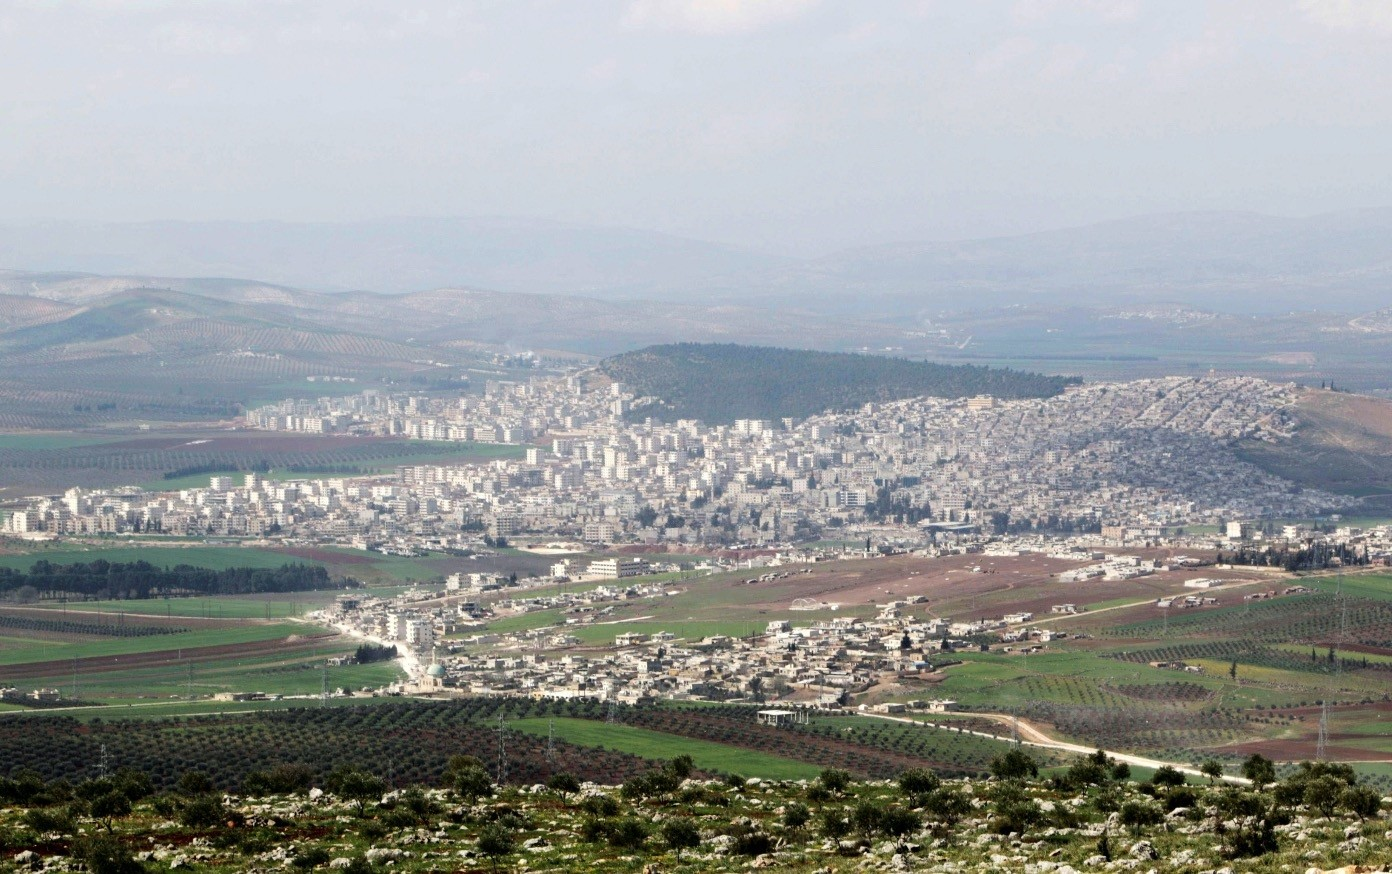 A general view shows the Syrian city of Afrin, near the Turkish border, where the outlawed PKK's Syrian branches, the YPG and PYD, have been recently stationed to continue their terrorist attacks against the Turkish national security, March 18, 2015.